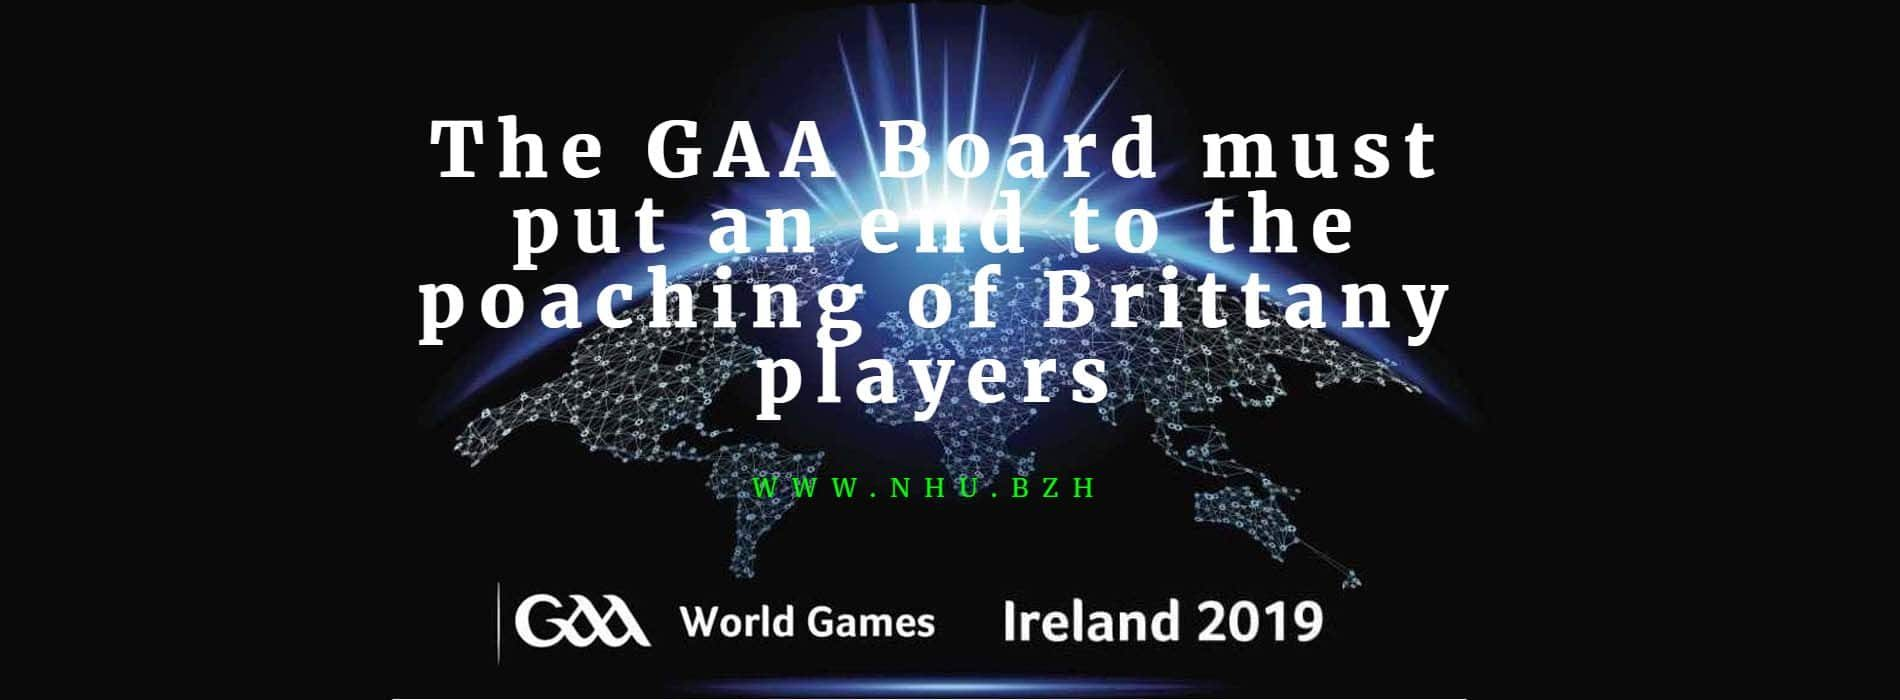 The GAA Board must put an end to the poaching of Brittany players